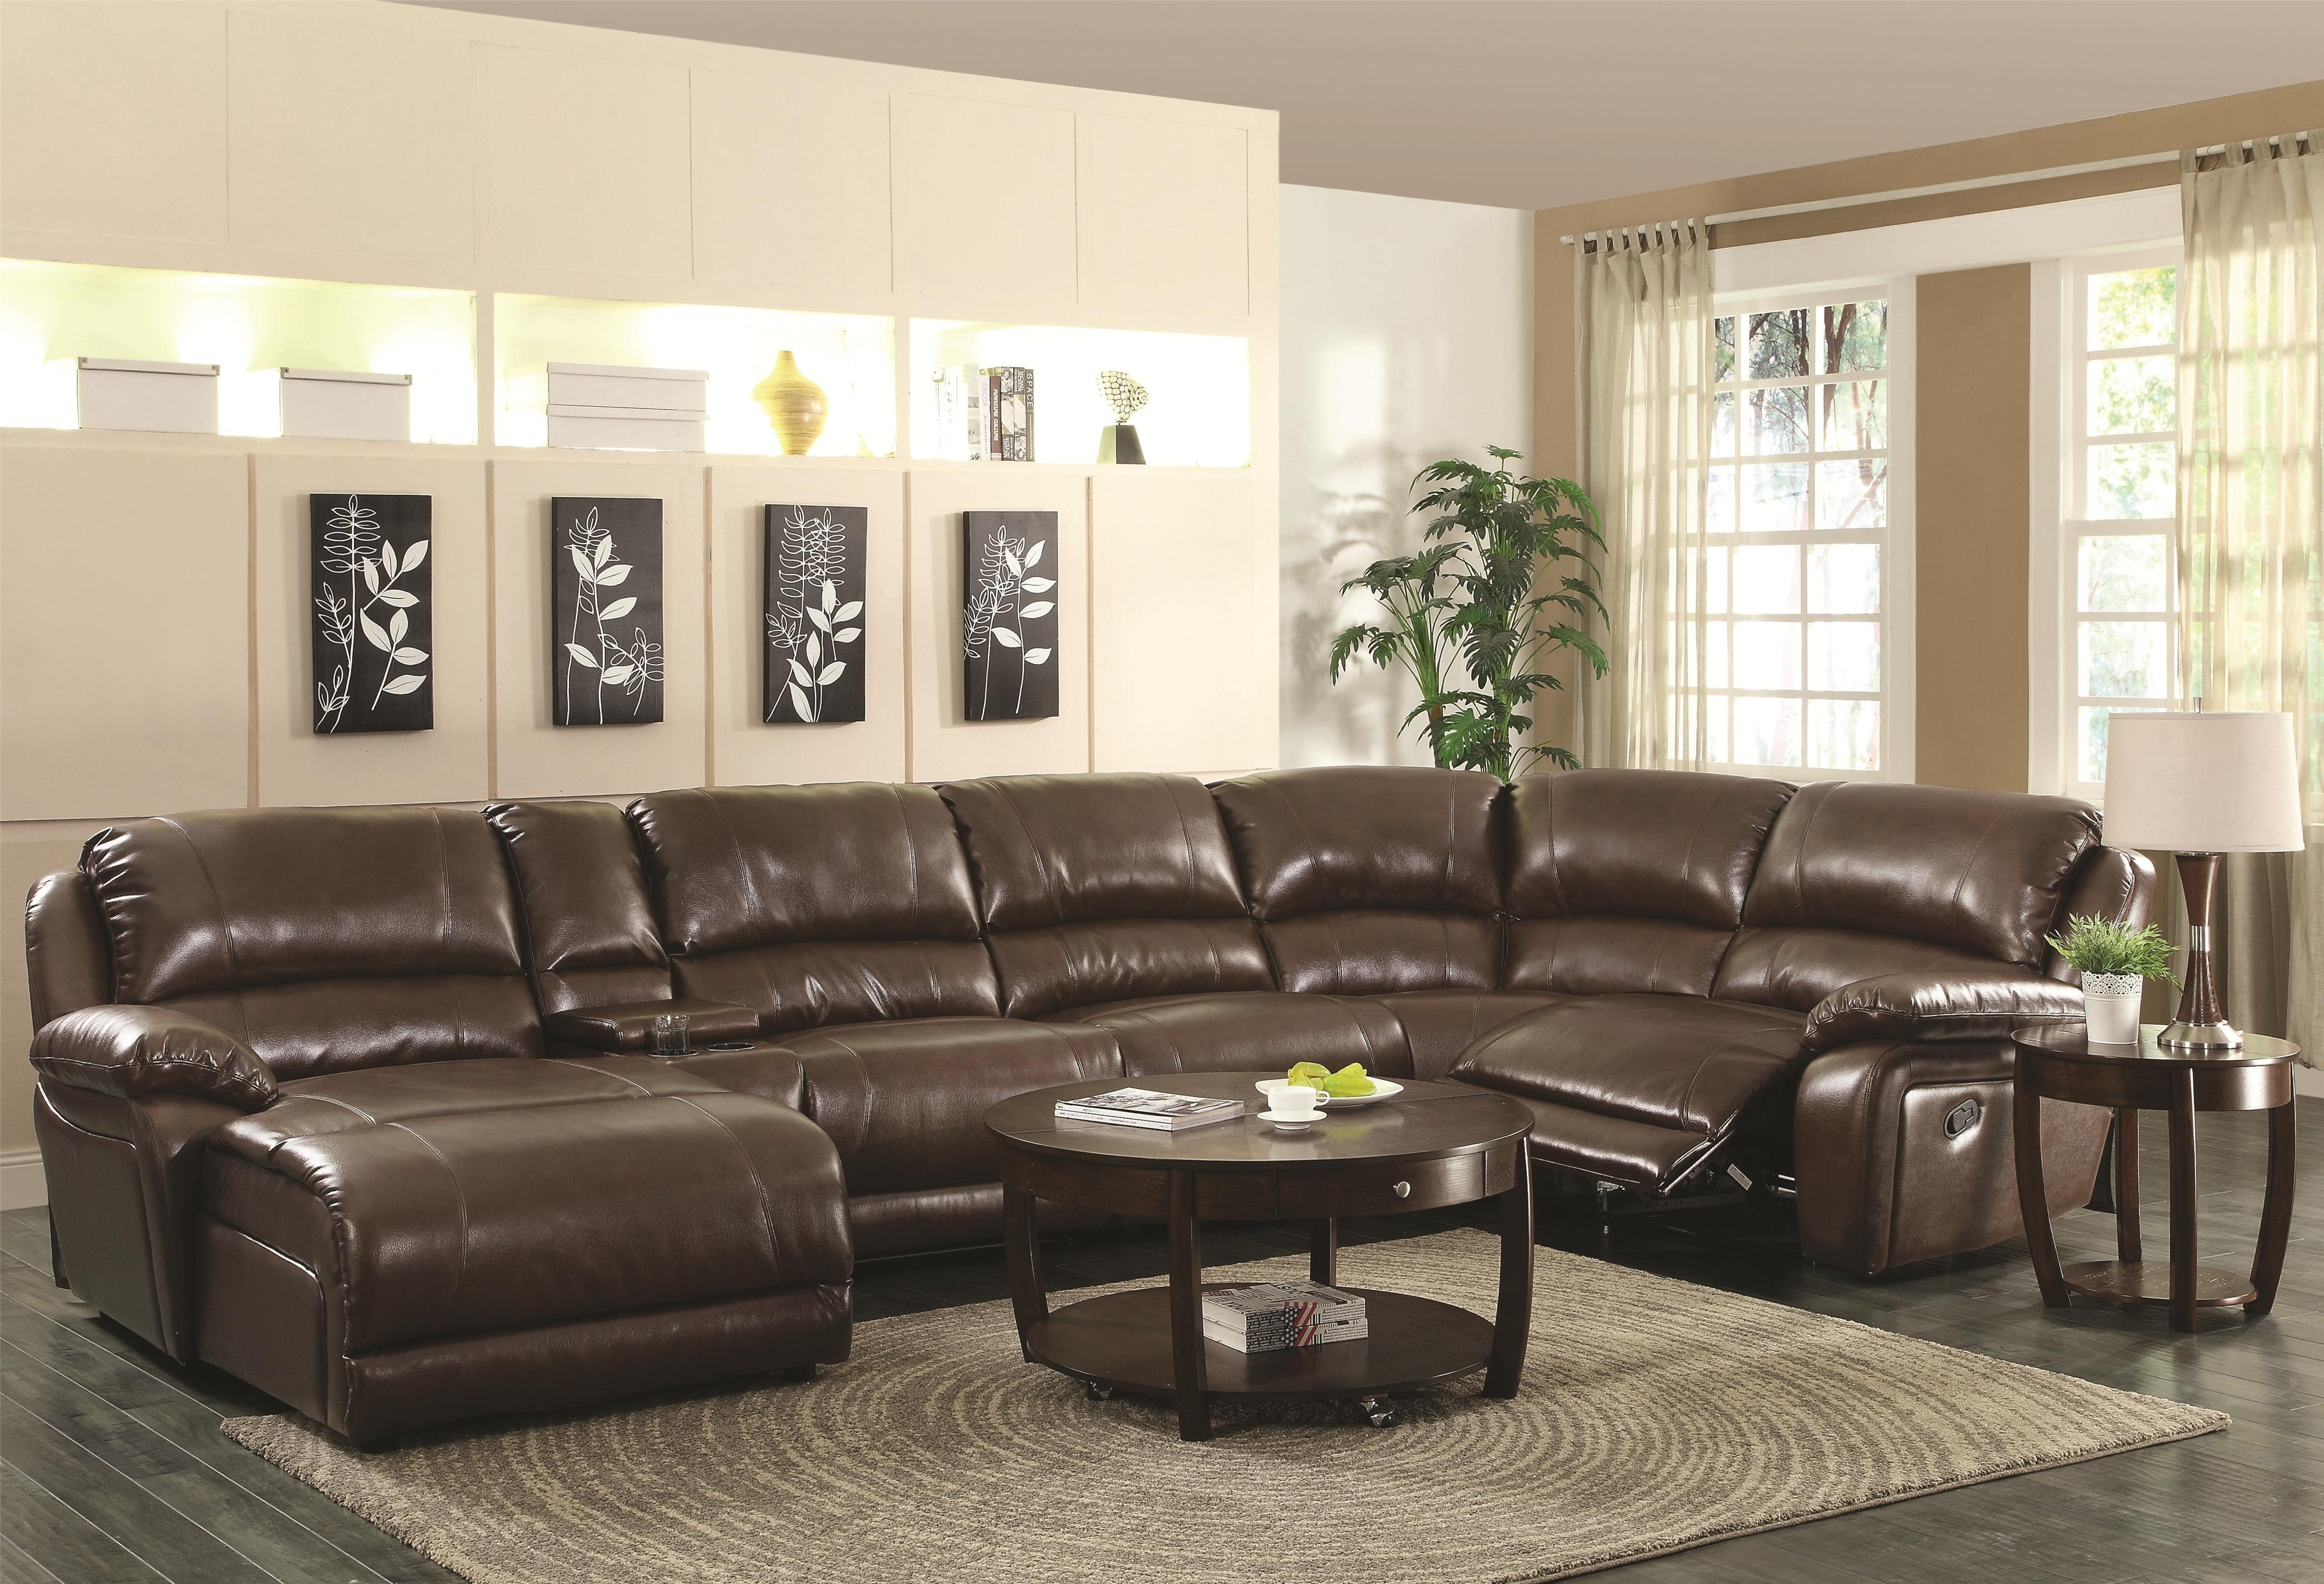 Leather Sectional With Chaise Lounge - Acwc intended for Clyde Grey Leather 3 Piece Power Reclining Sectionals With Pwr Hdrst & Usb (Image 19 of 30)